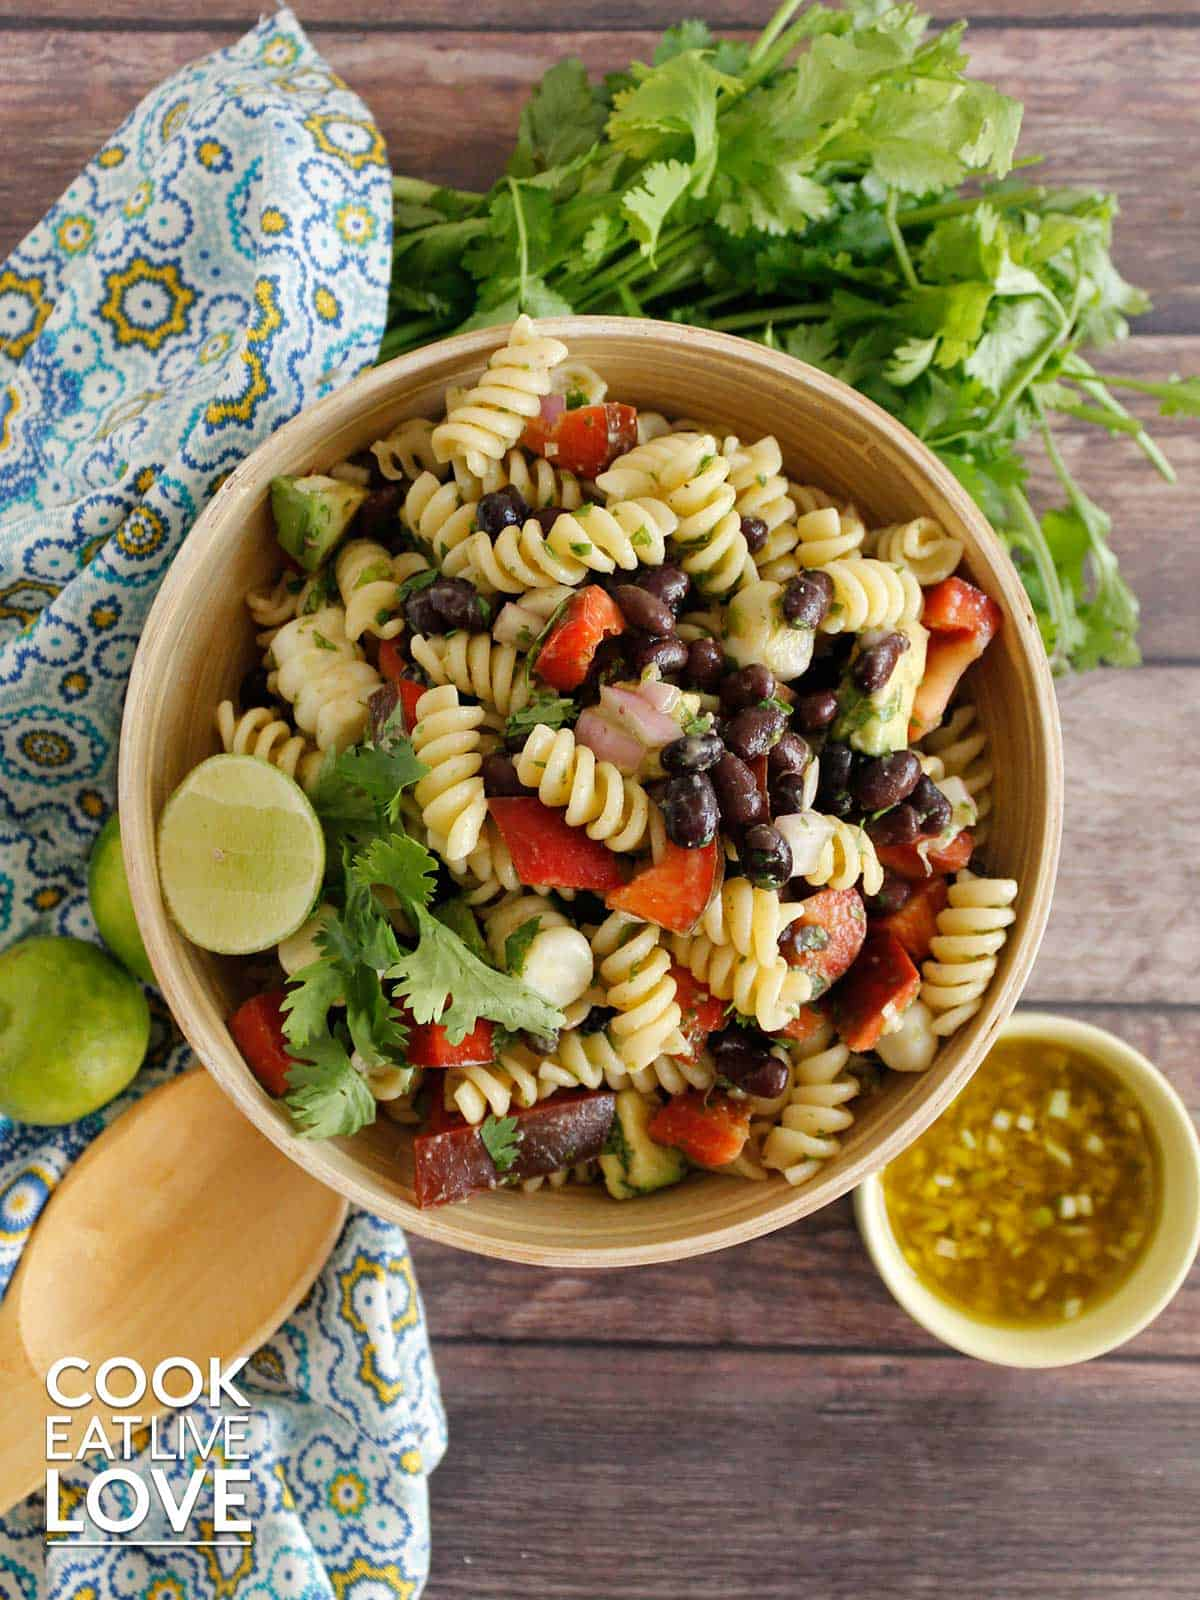 Bowl and plate of pasta salad on a table